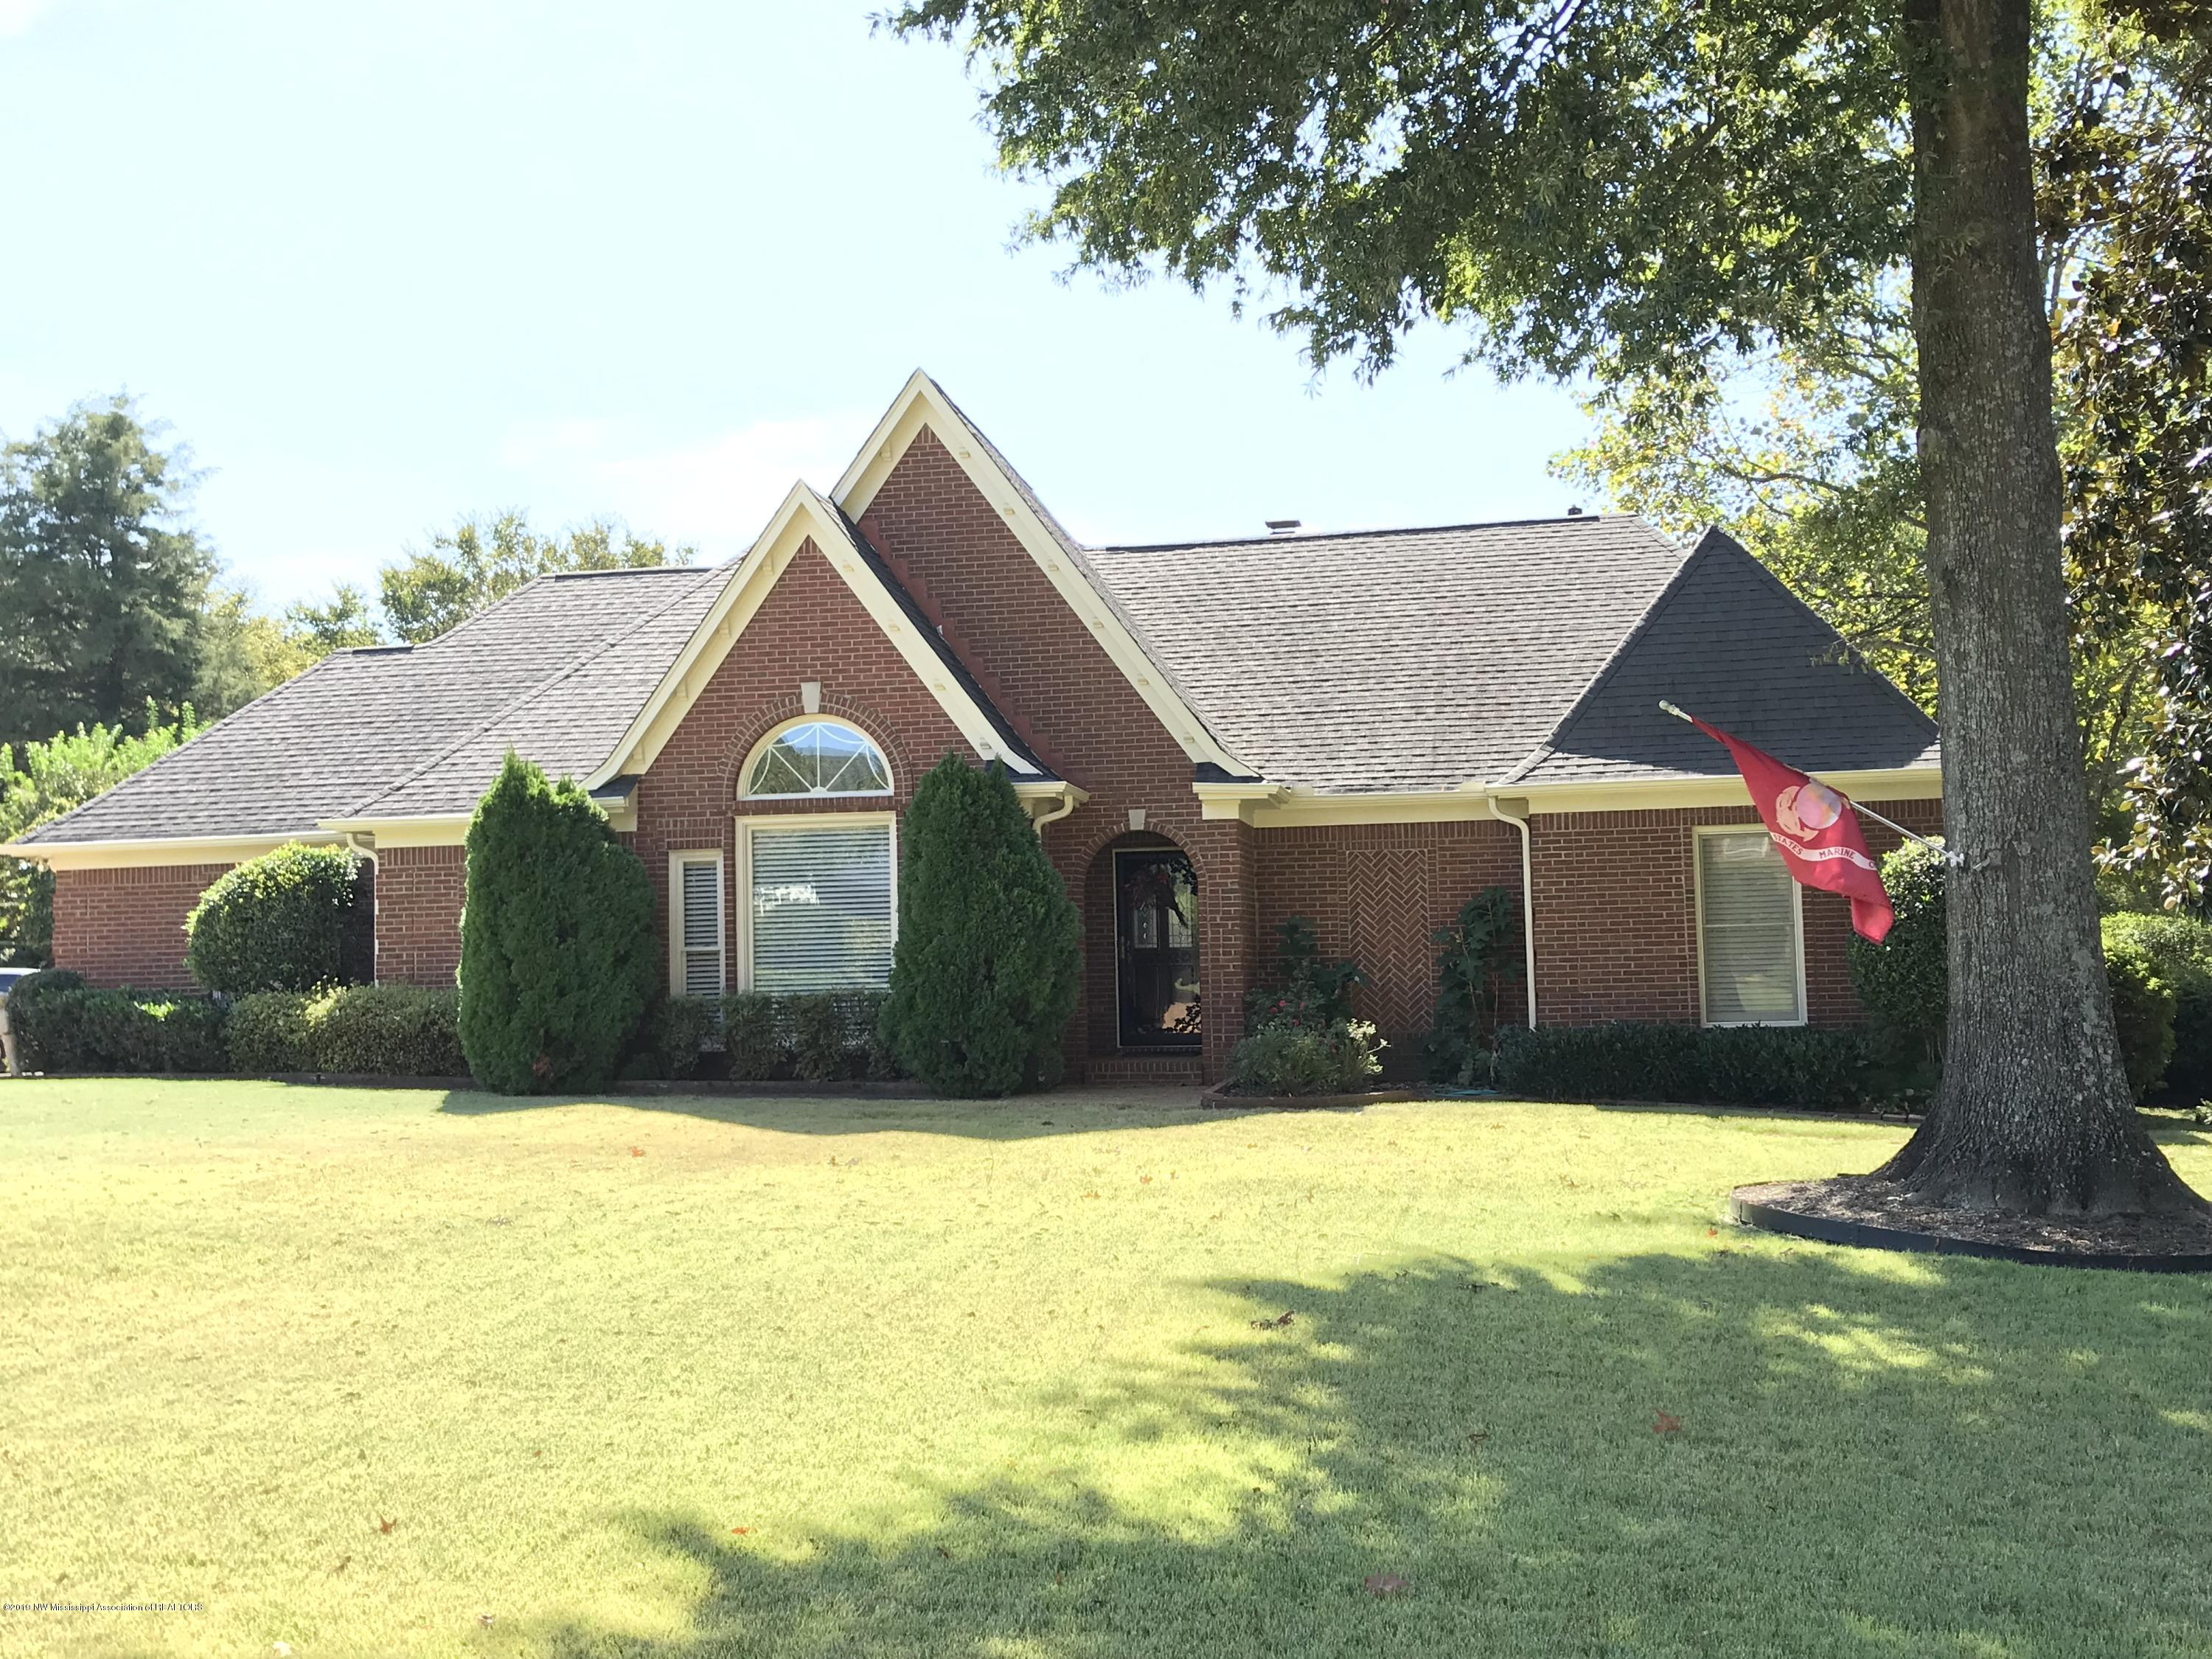 9333 Longwood Drive, Olive Branch in DeSoto County, MS 38654 Home for Sale